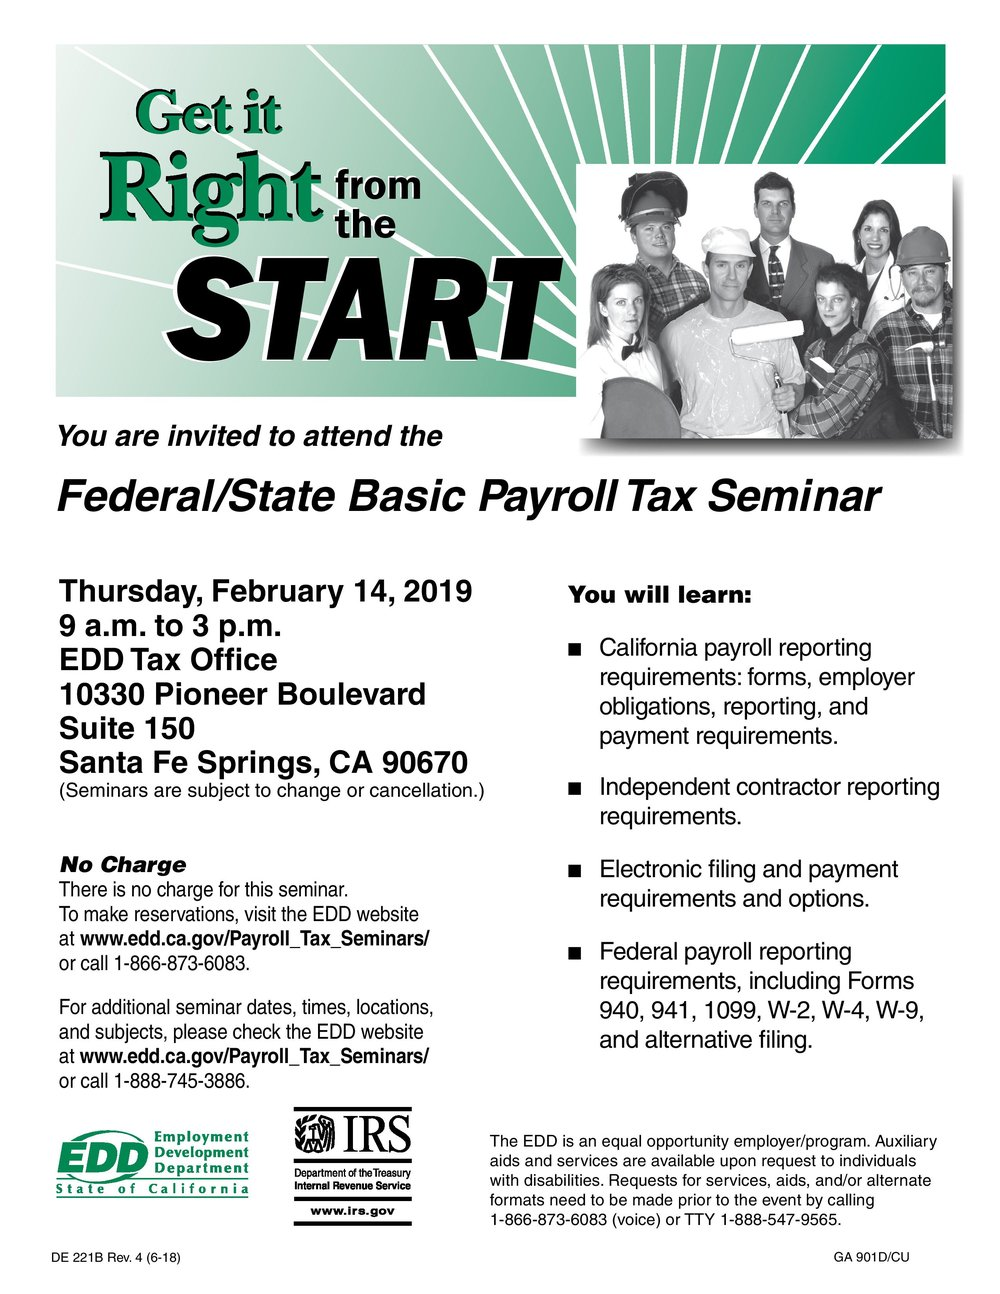 Federal/state basic payroll tax seminar  - February 14th, 2019